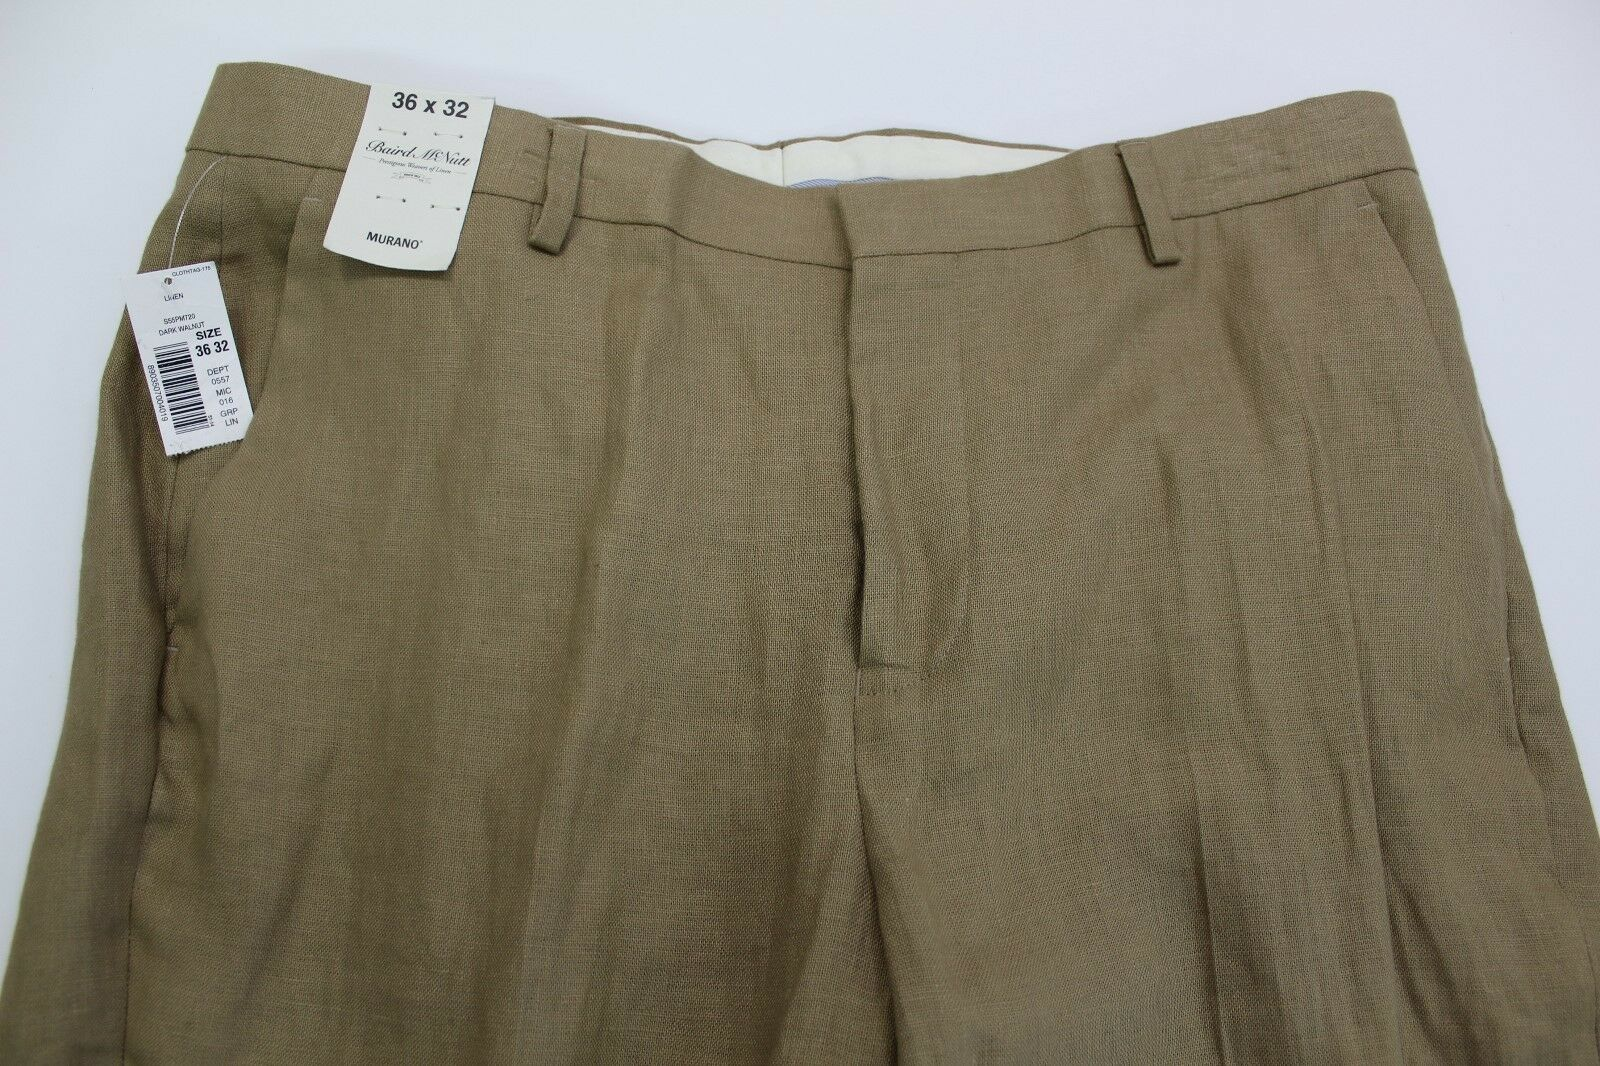 Men's MURANO Walnut Tan Khaki LINEN Dress Pants 36x32 NEW NWT Baird McNutt